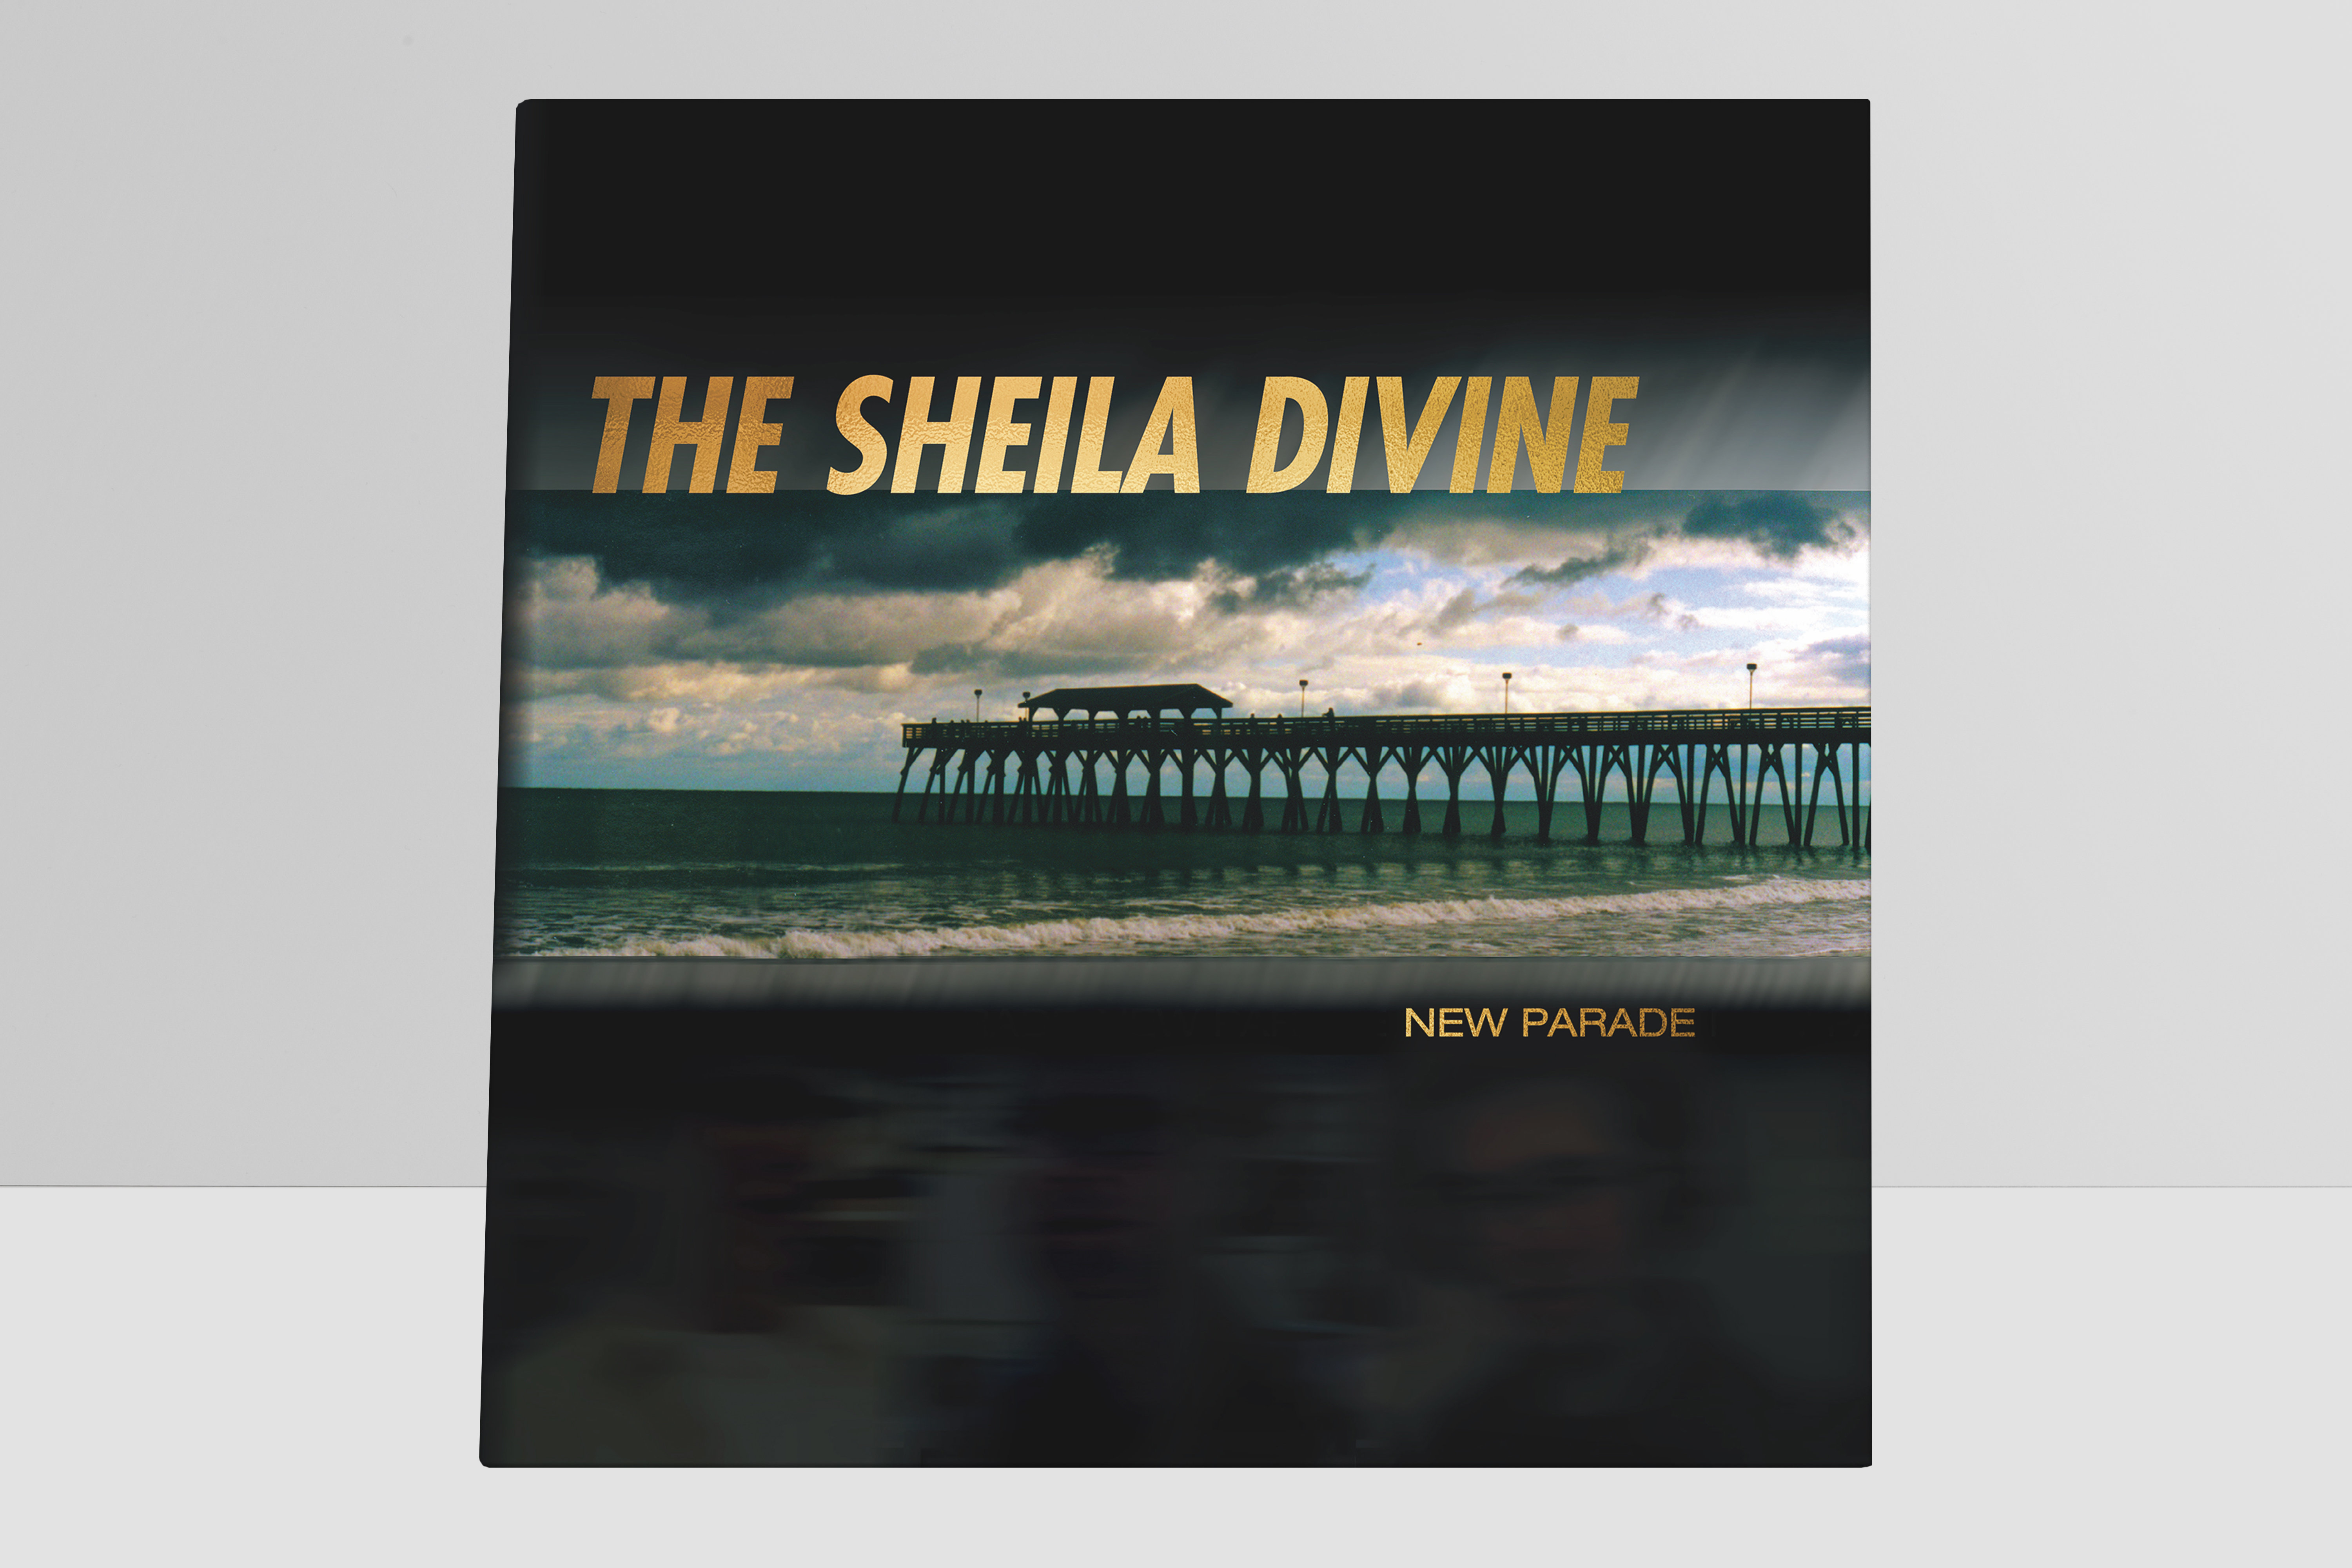 SOLD OUT!!! The Sheila Divine - New Parade box